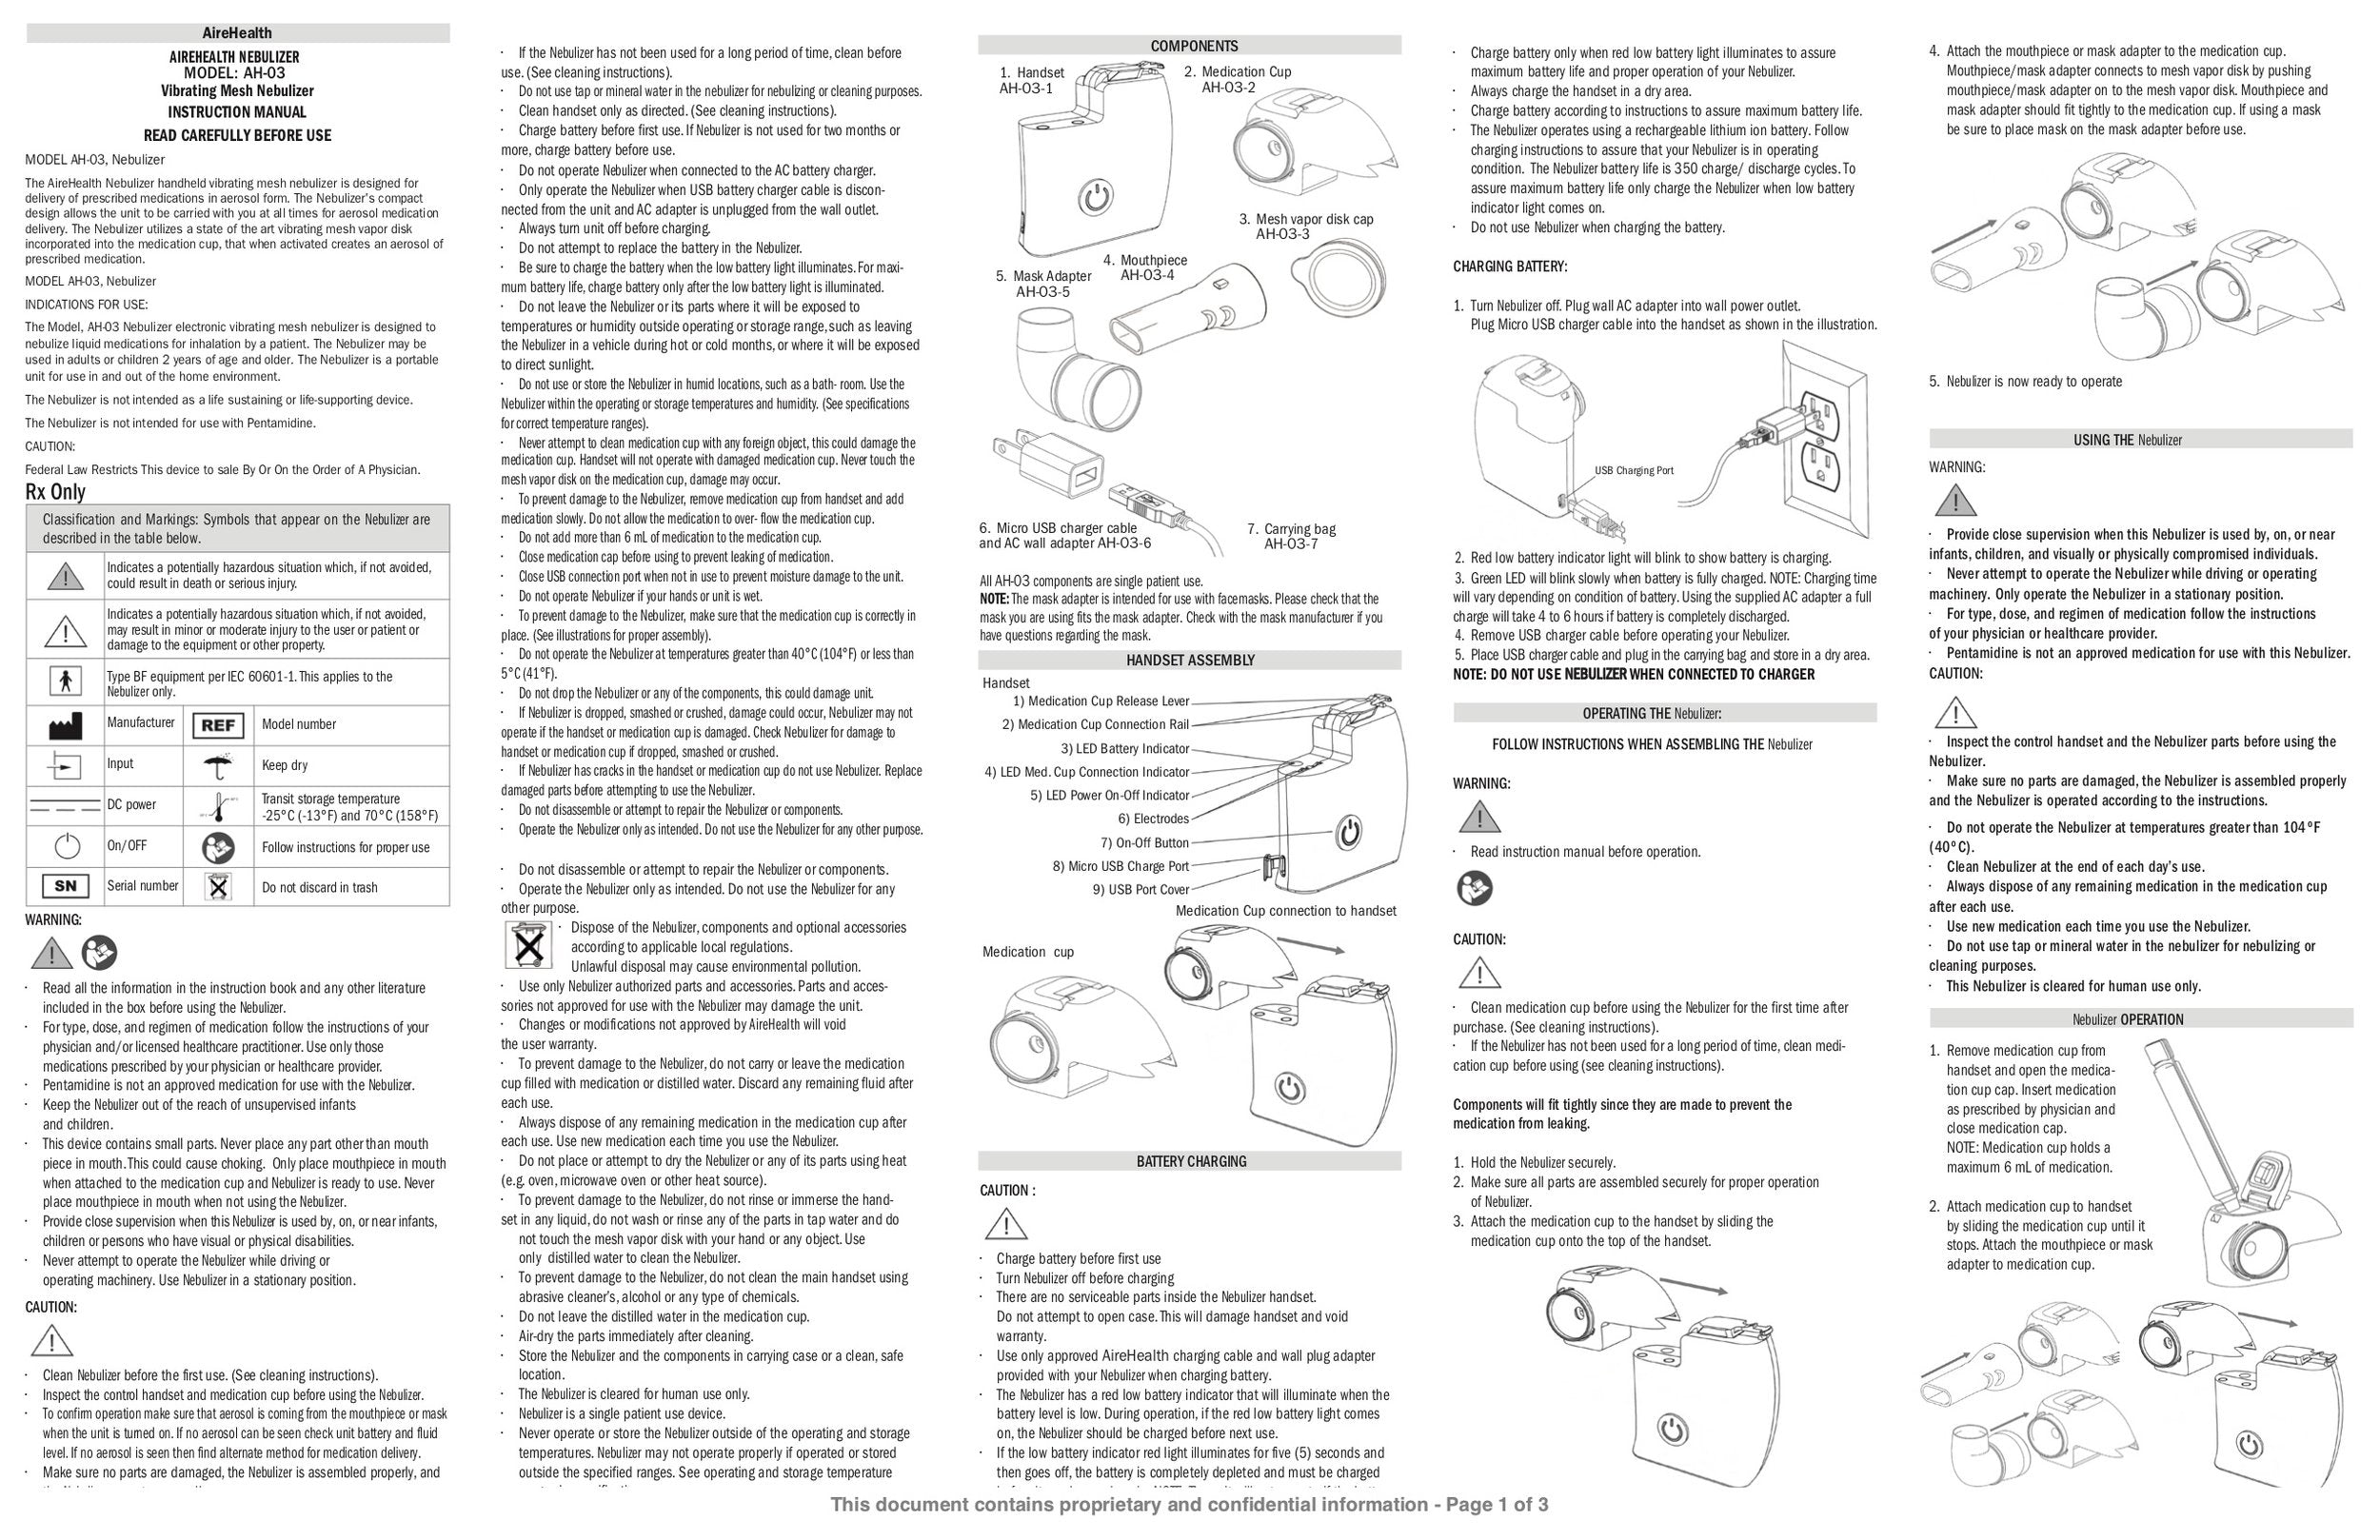 Page 1 of English Instructions For Use of AireHealth Portable Nebulizer